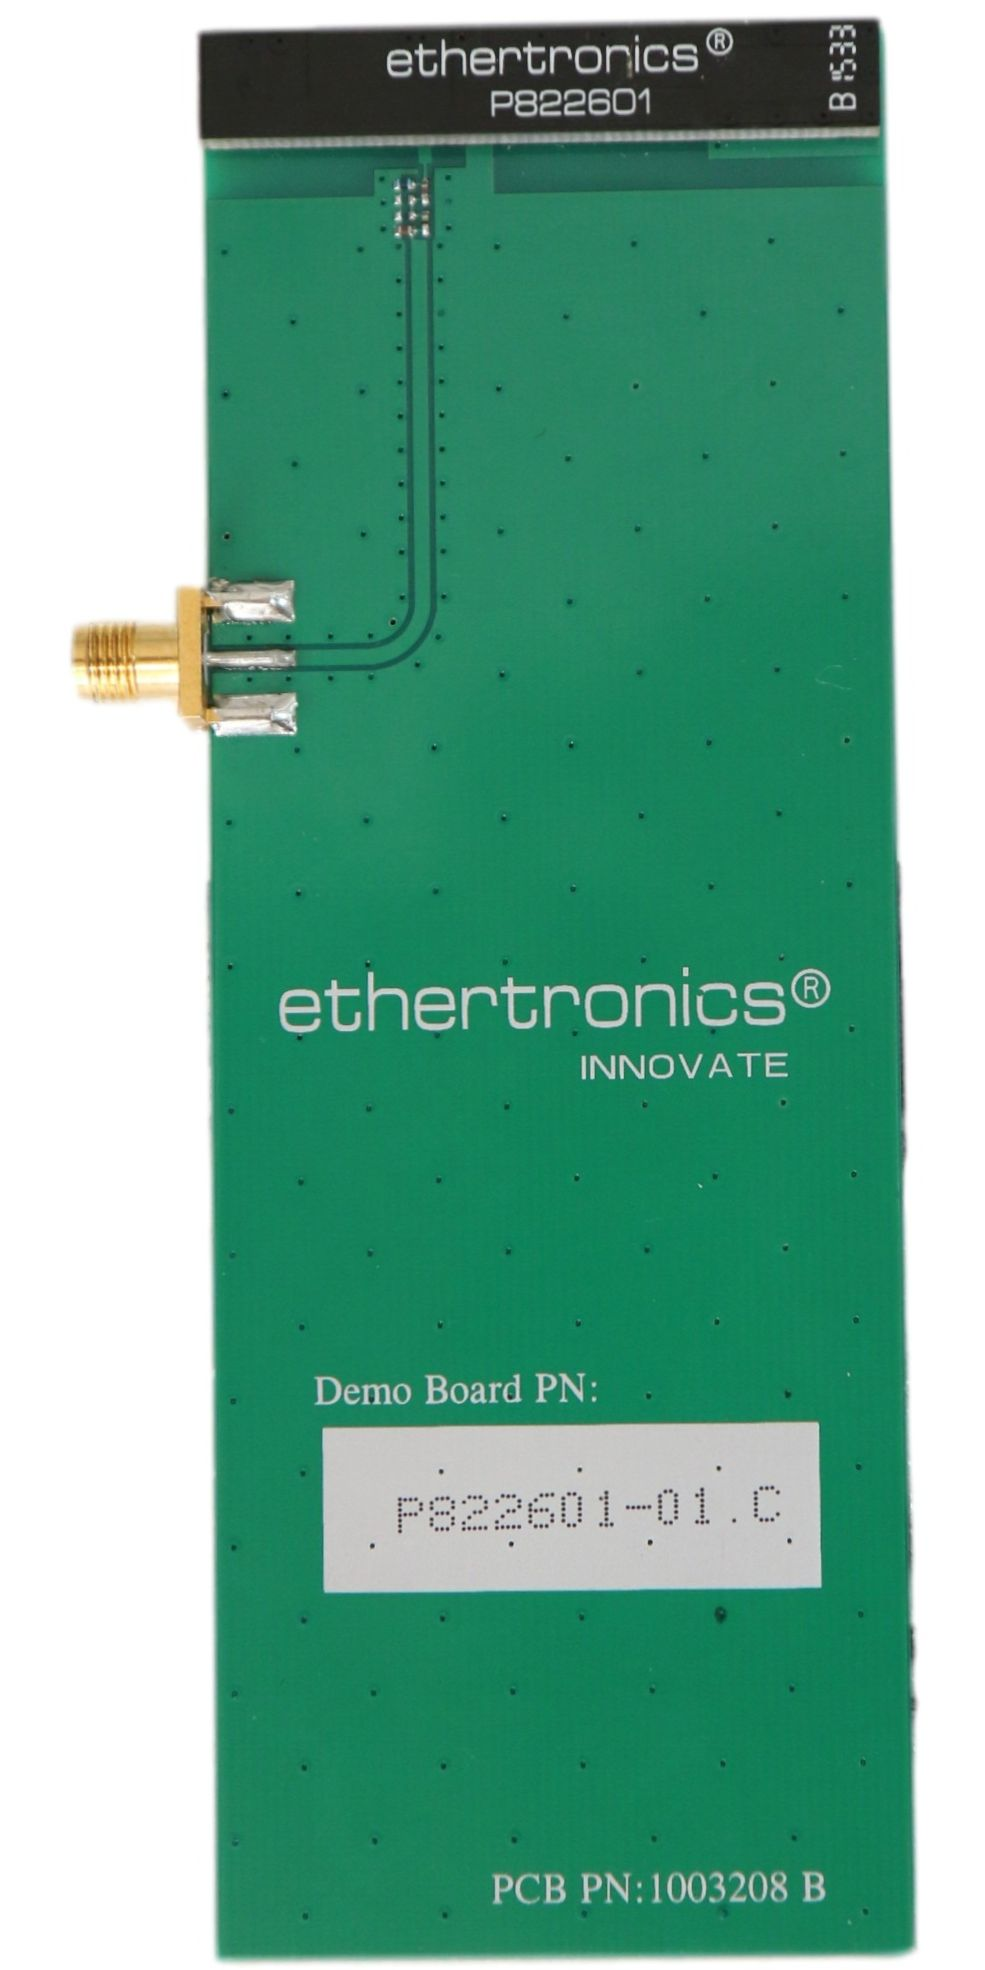 Gain dBi test service measured Ethertronics Octa Band PCB antenna